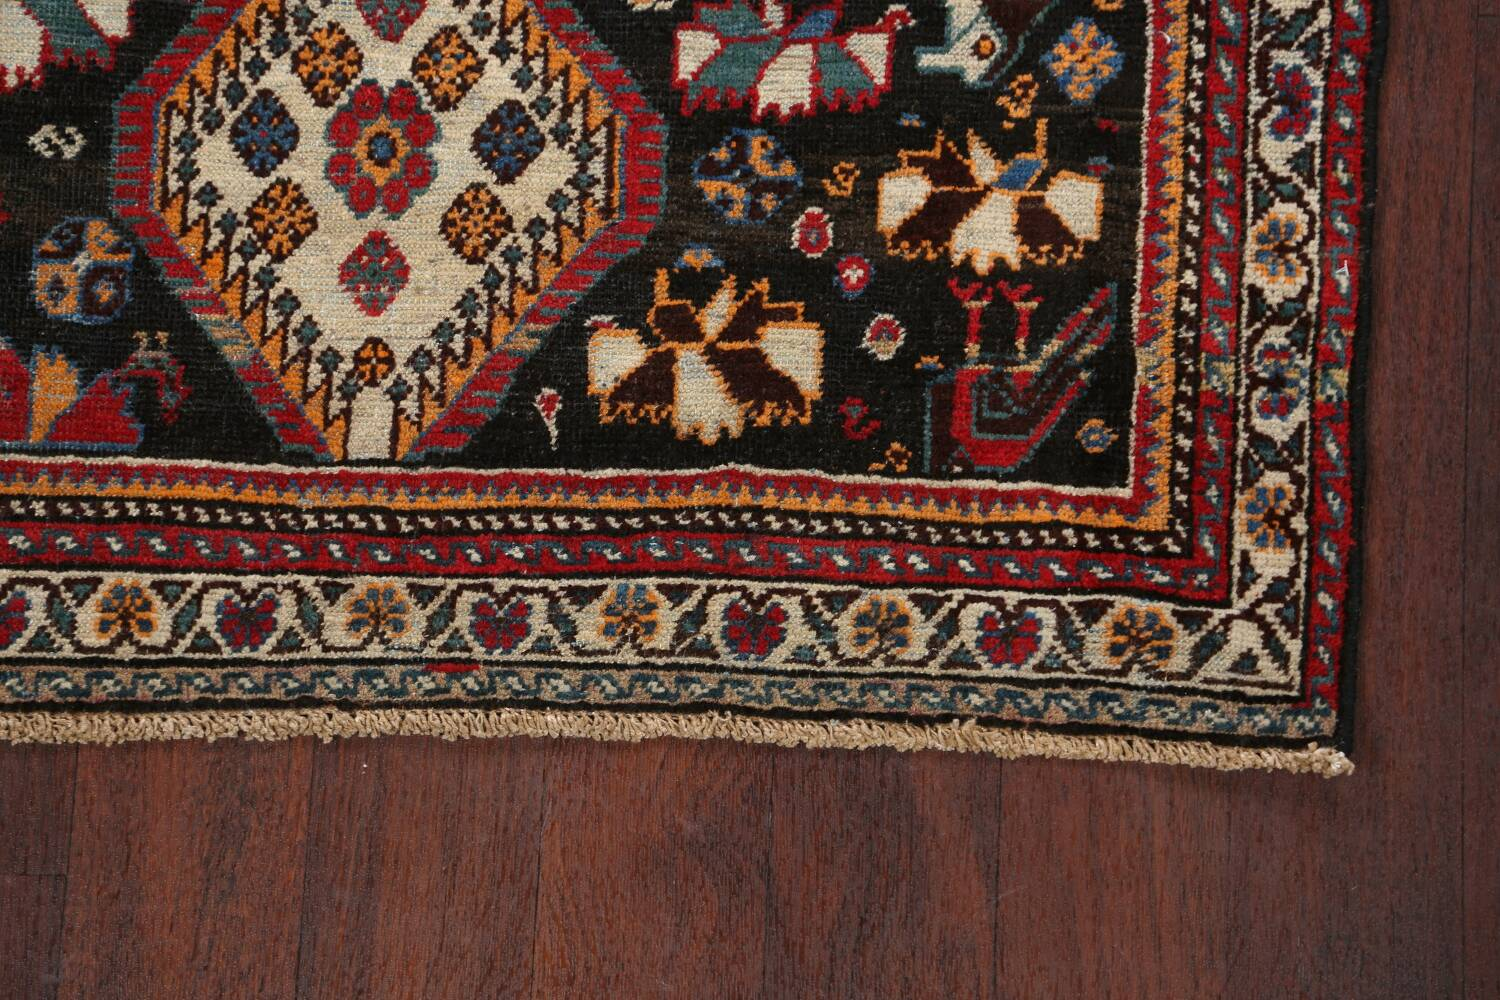 Antique Pre-1900 Tribal Bakhtiari Persian Area Rug 4x5 image 5